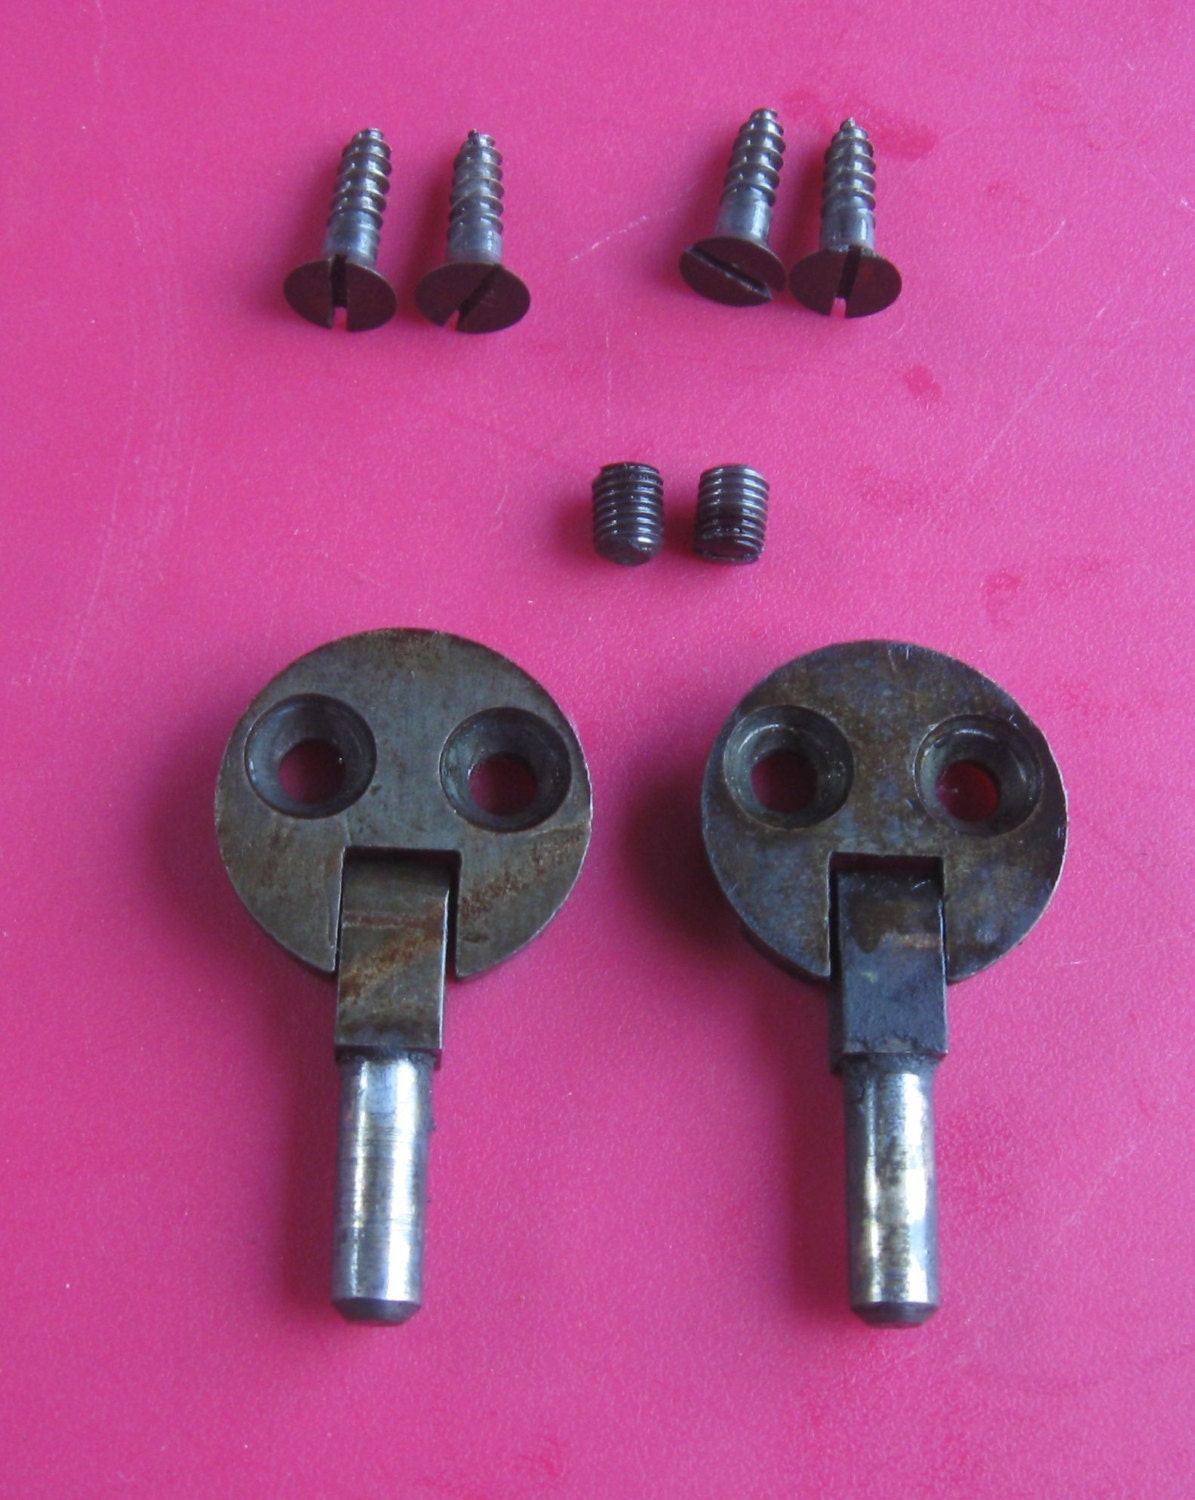 sewing machine cabinet hinges